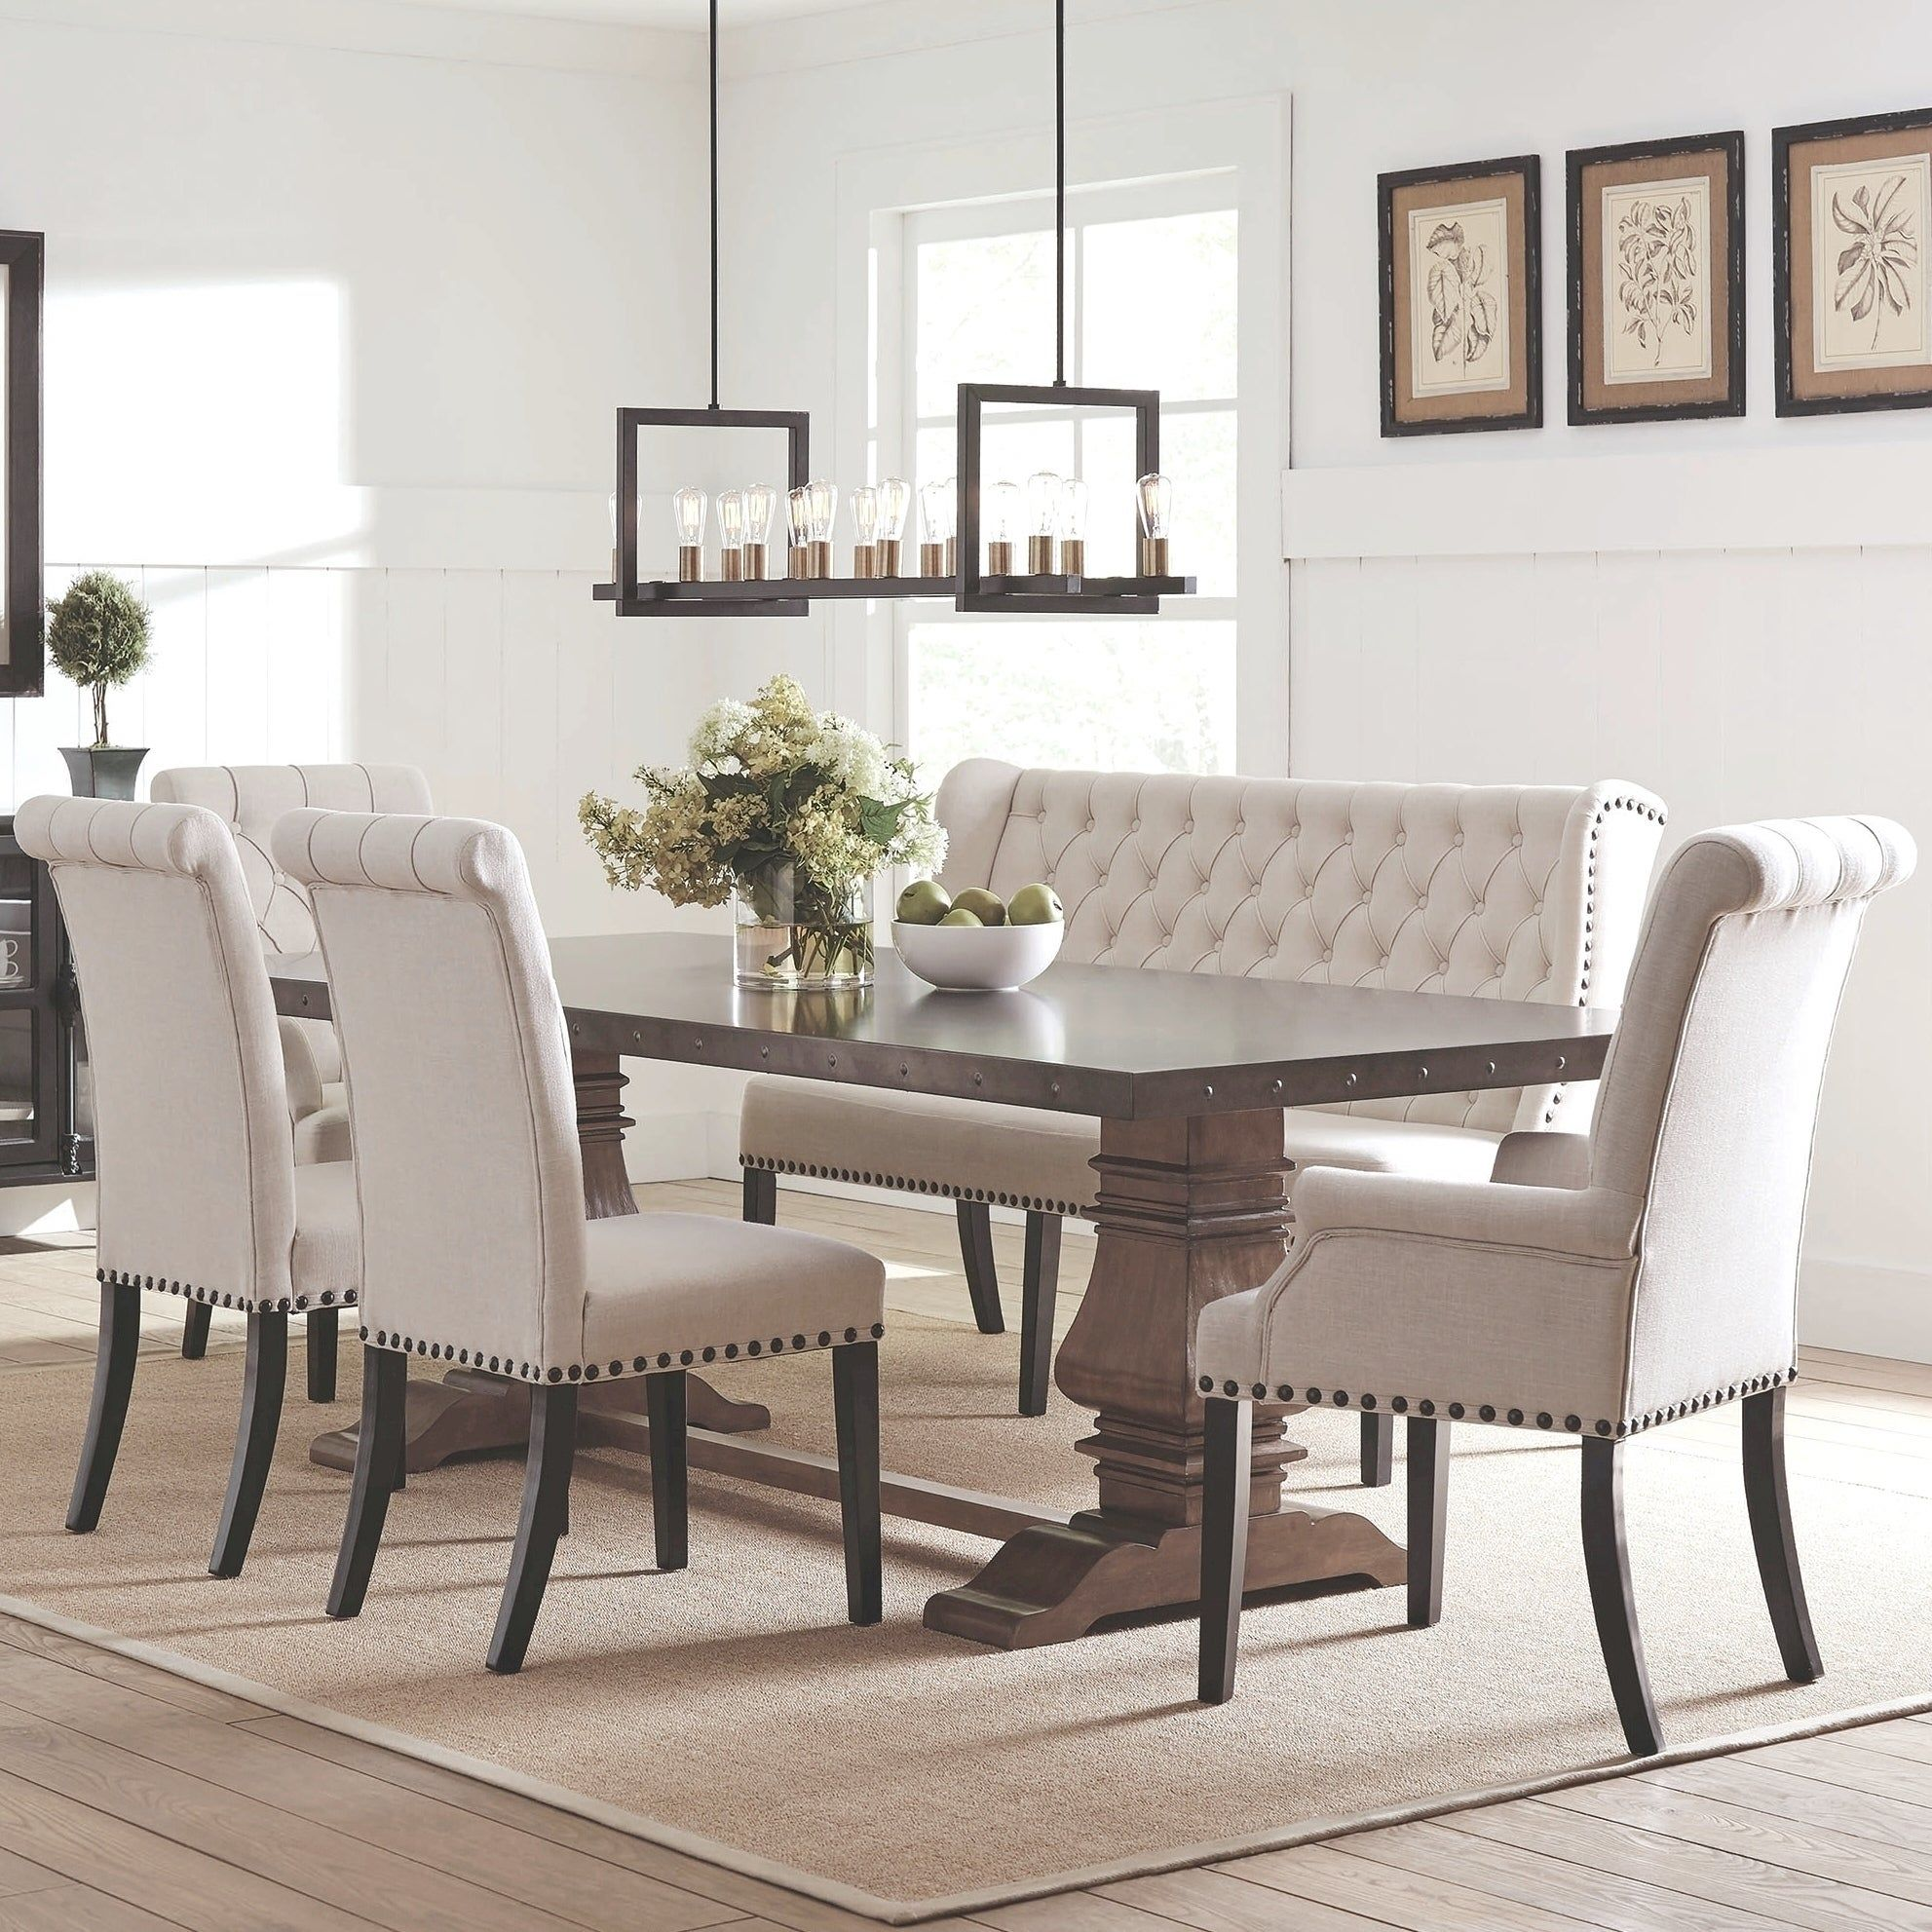 French Baroque Designe Dining Set With Rolled Button Tufted Chairs And Bench Black Dining Room Furniture Dining